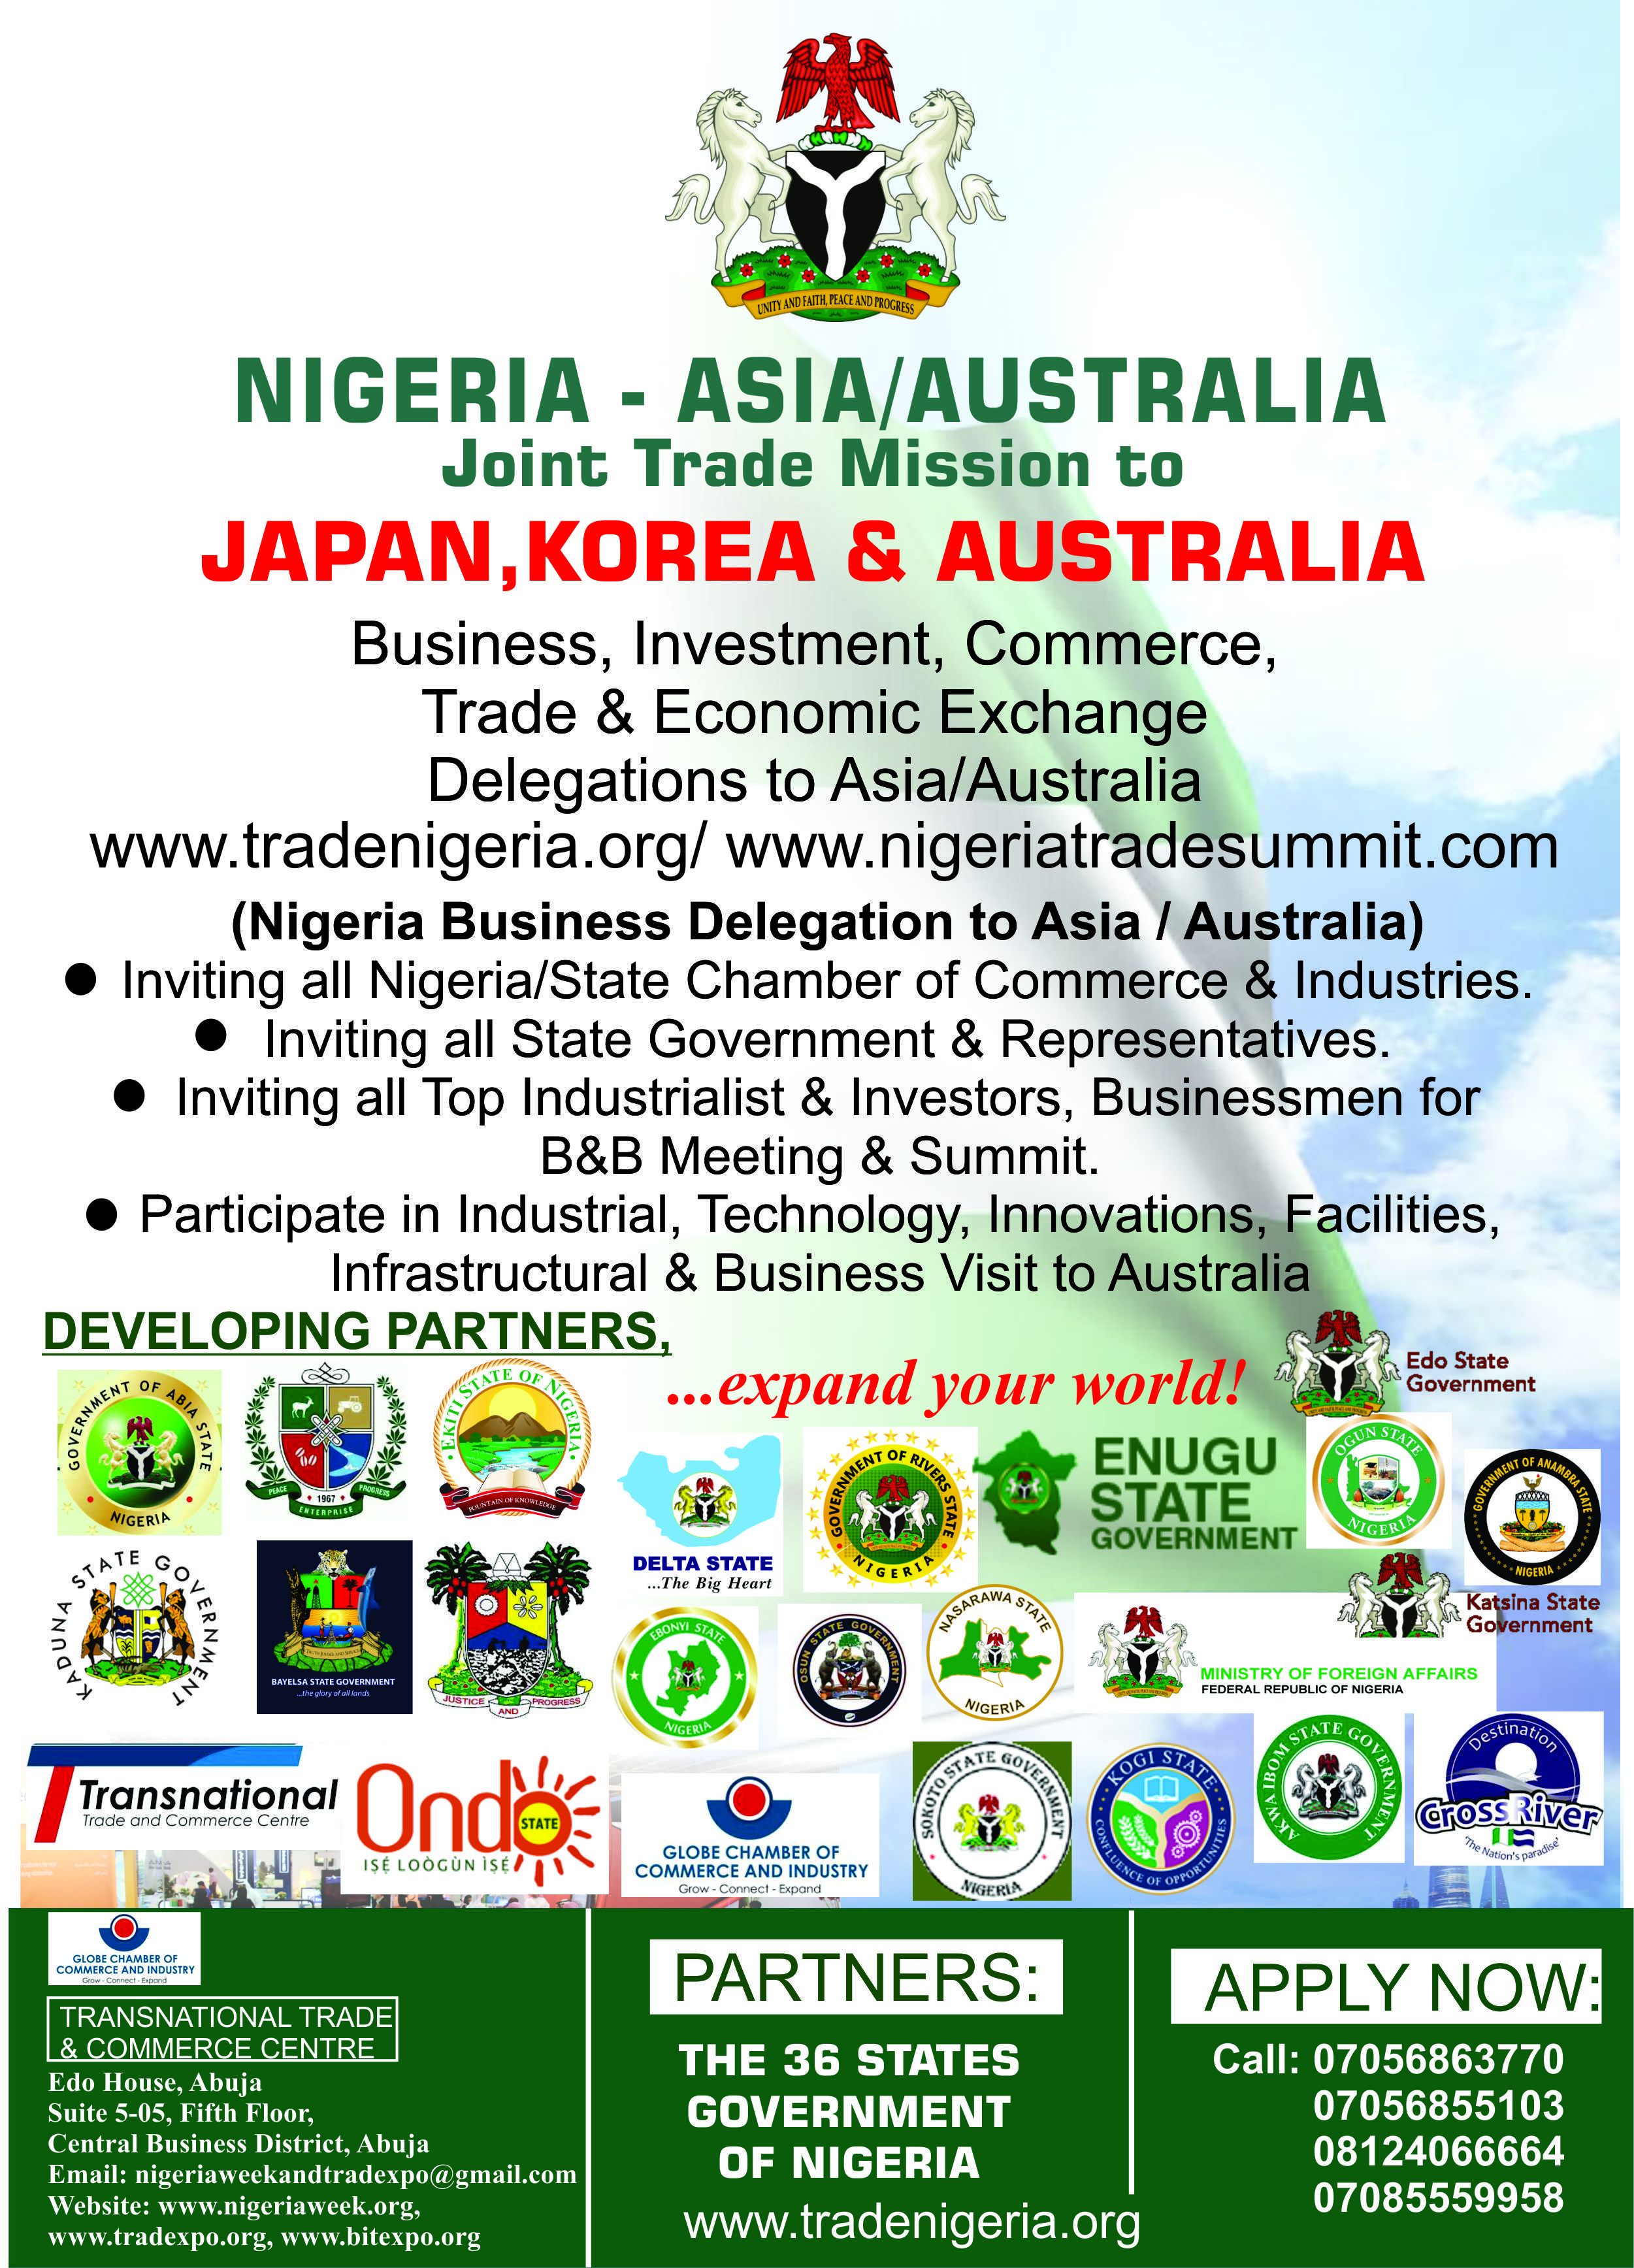 Nigeria Asia Australia Week And Joint Trade Mission Is An